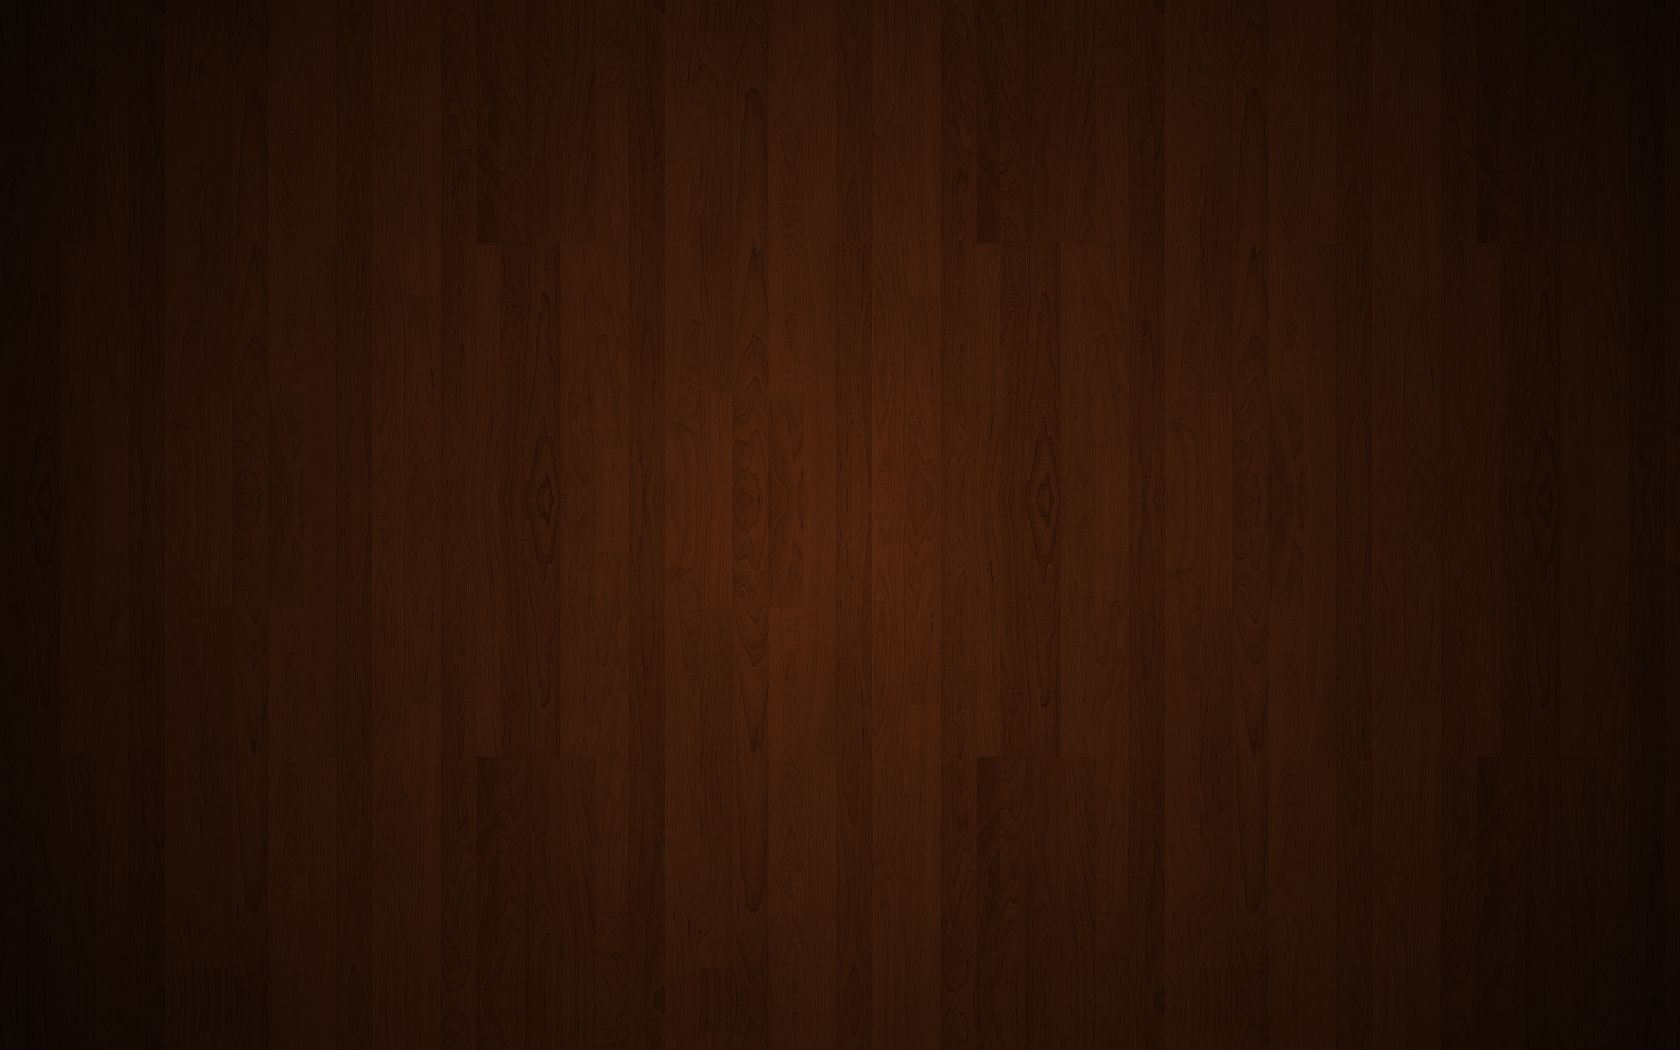 dark wood floor background. dark wood background wallpapers httphdwallpapersfcomdarkwood floor o